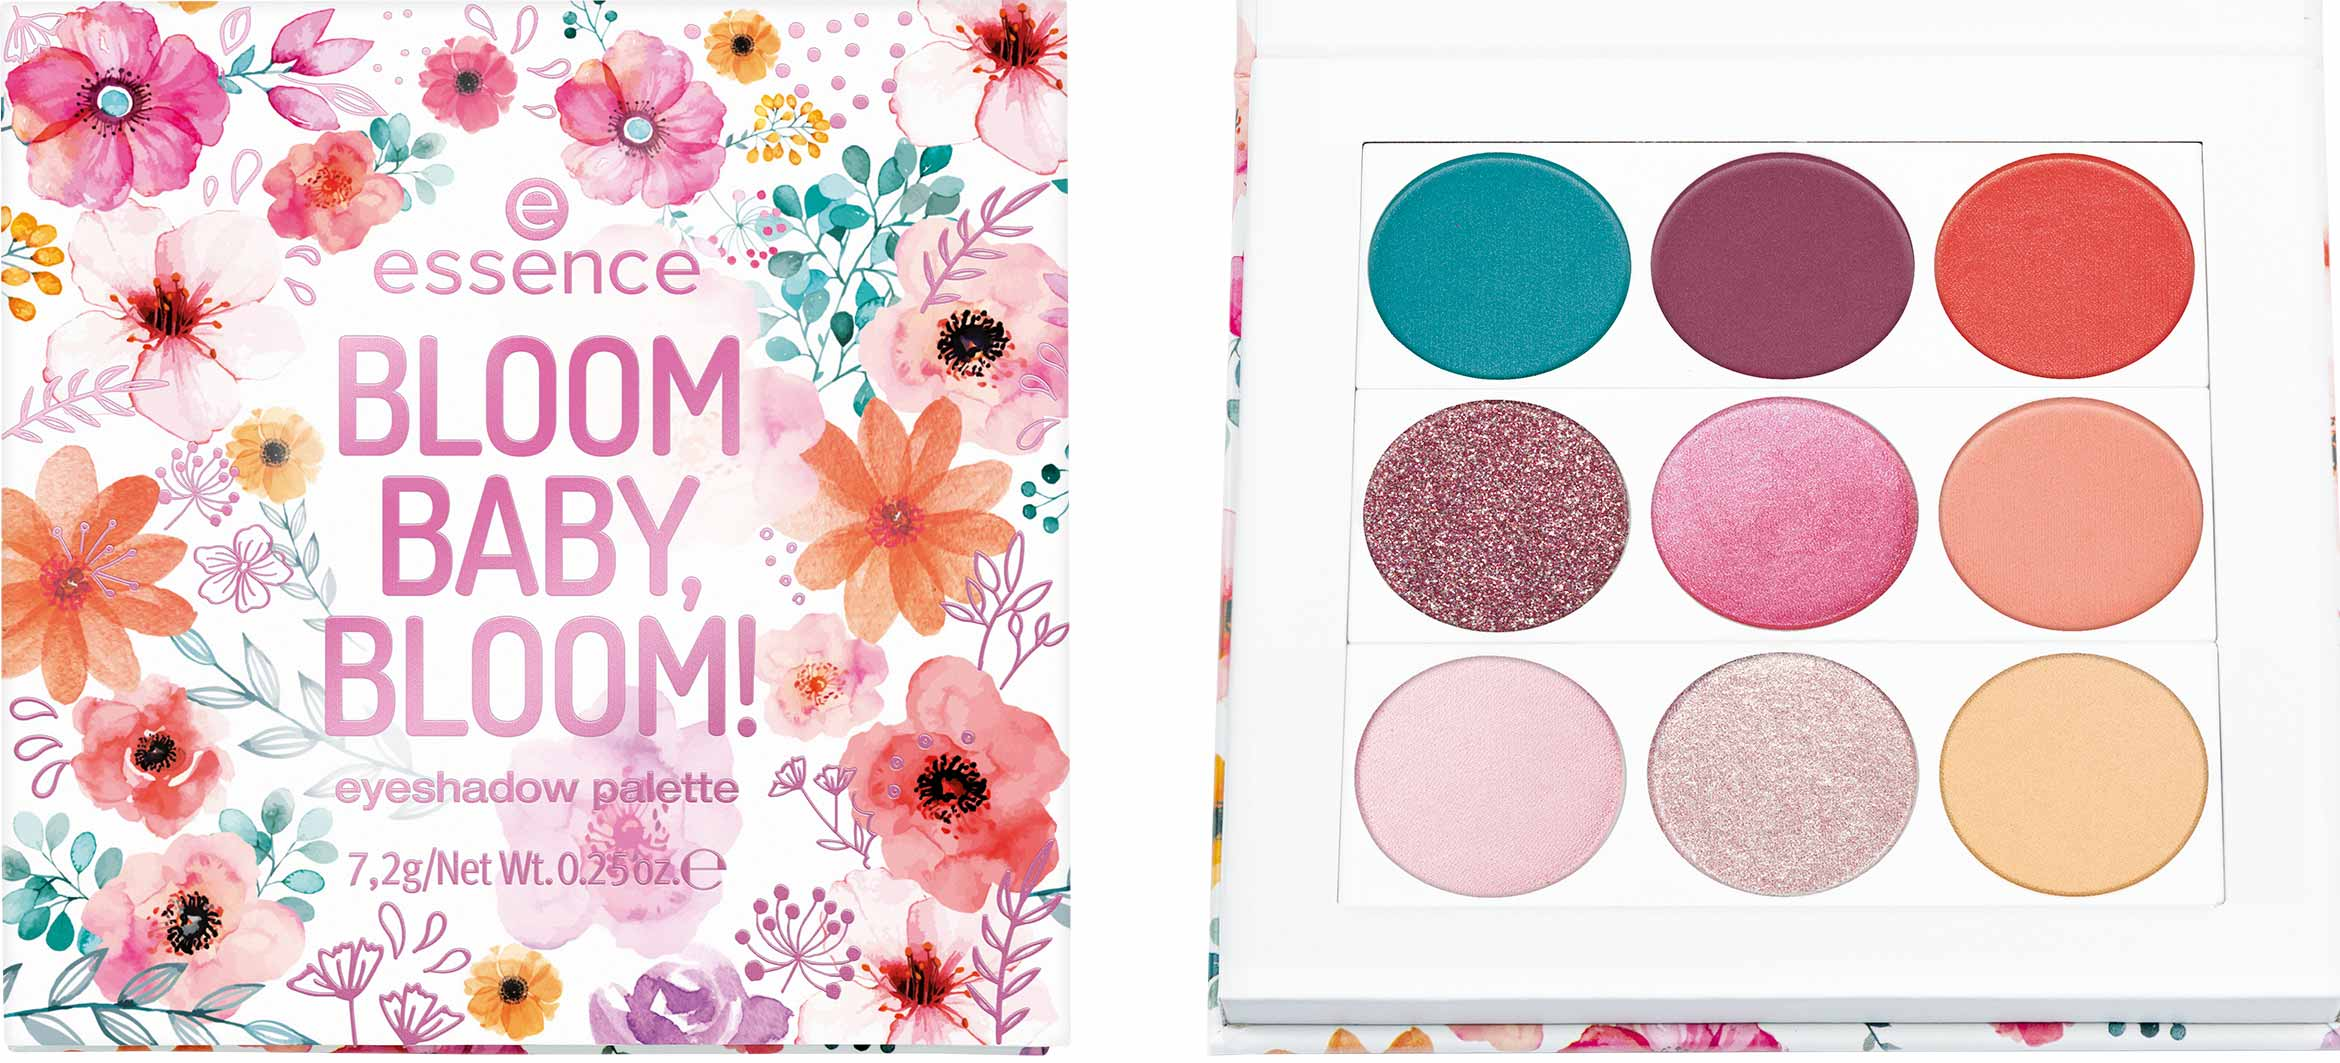 essence bloom baby bloom eyeshadow palette